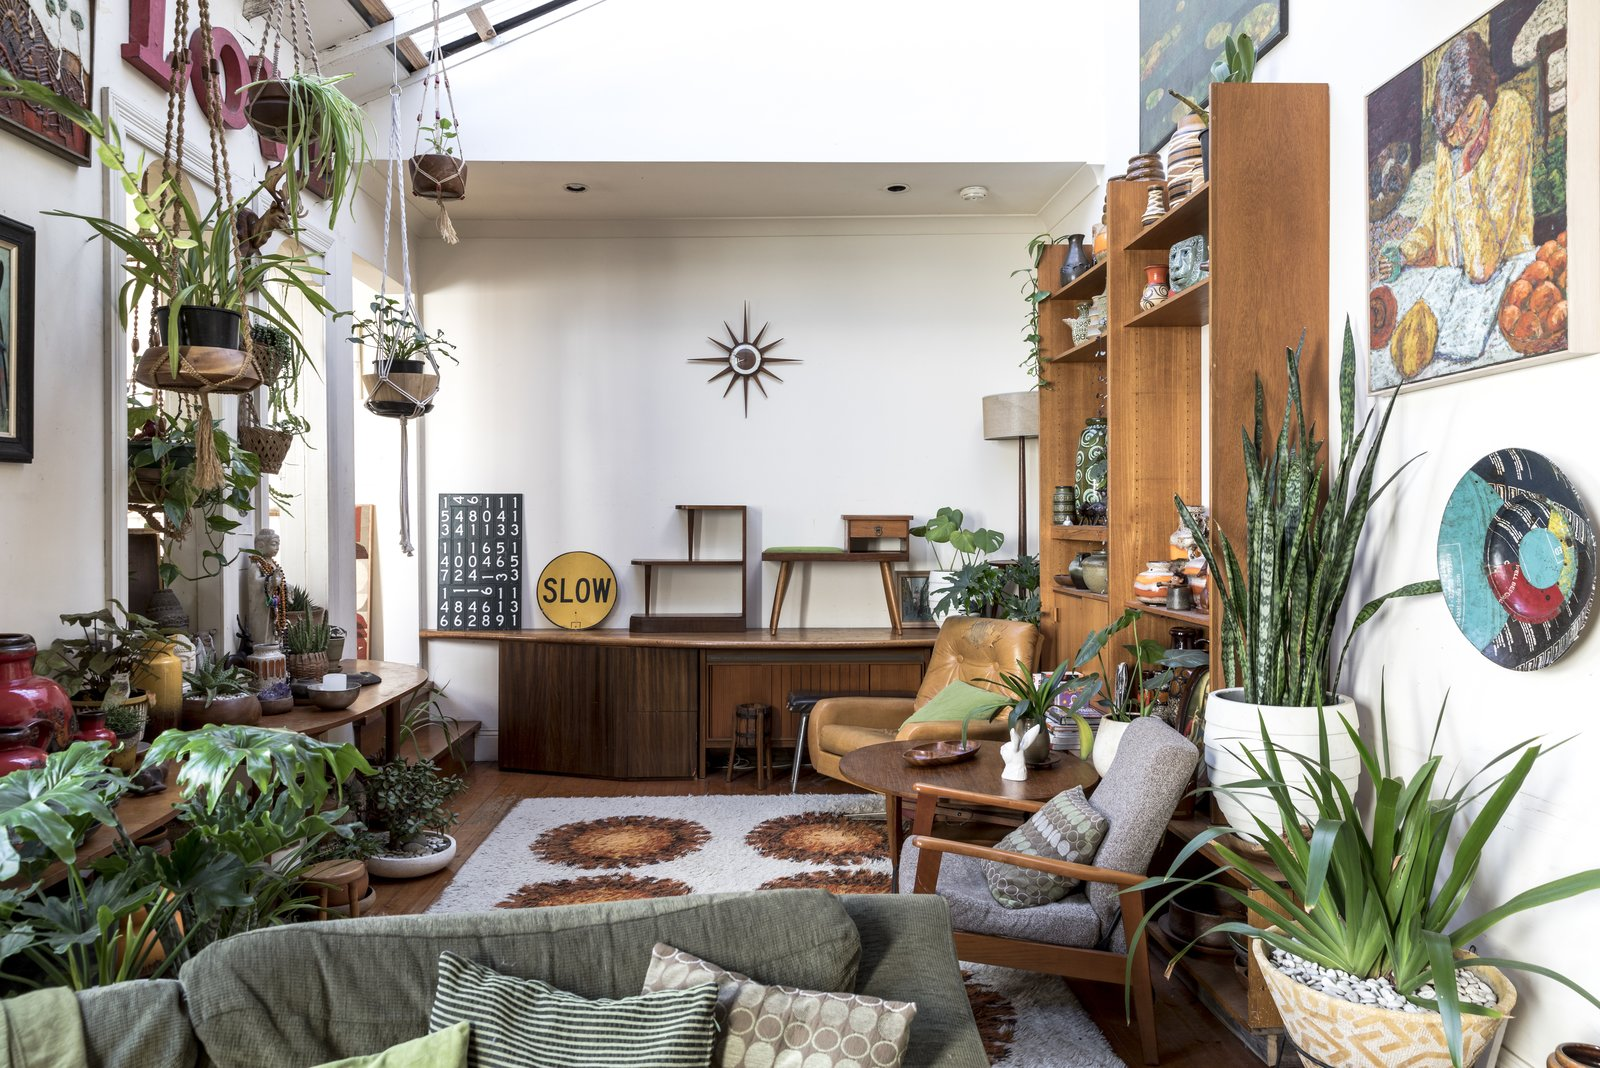 These Four Harmonious Homes Are a Lesson in How to Design With Roommates